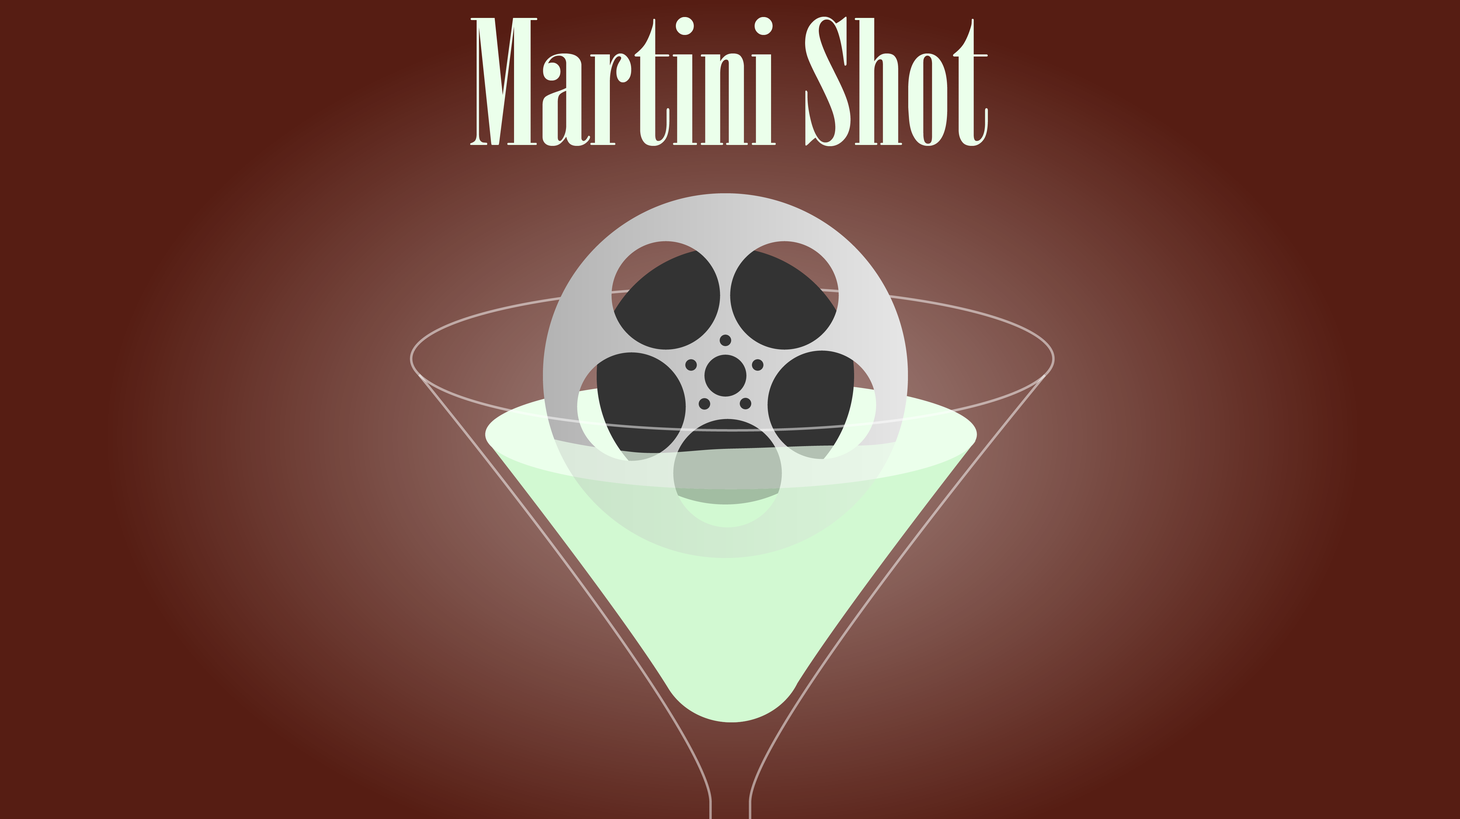 This is Rob Long with Martini Shot on KCRW and it's not 6:44 anymore, it's 4:44 now, which is called, in the television business, a time slot change...